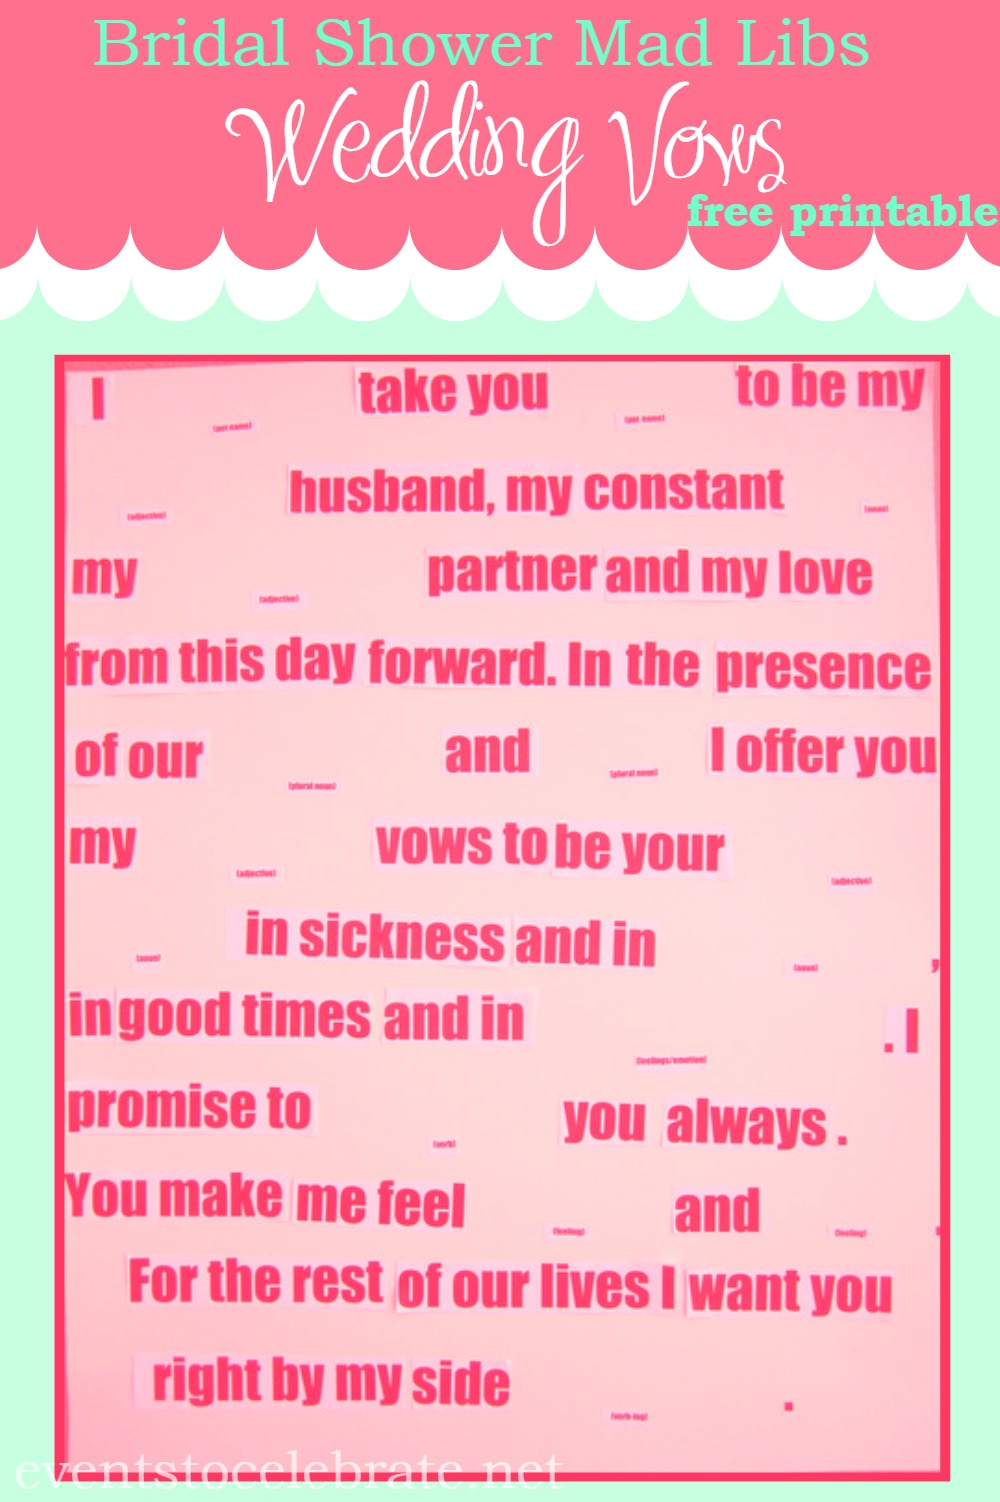 Mad lib printable archives events to celebrate mad libs wedding vows pronofoot35fo Image collections